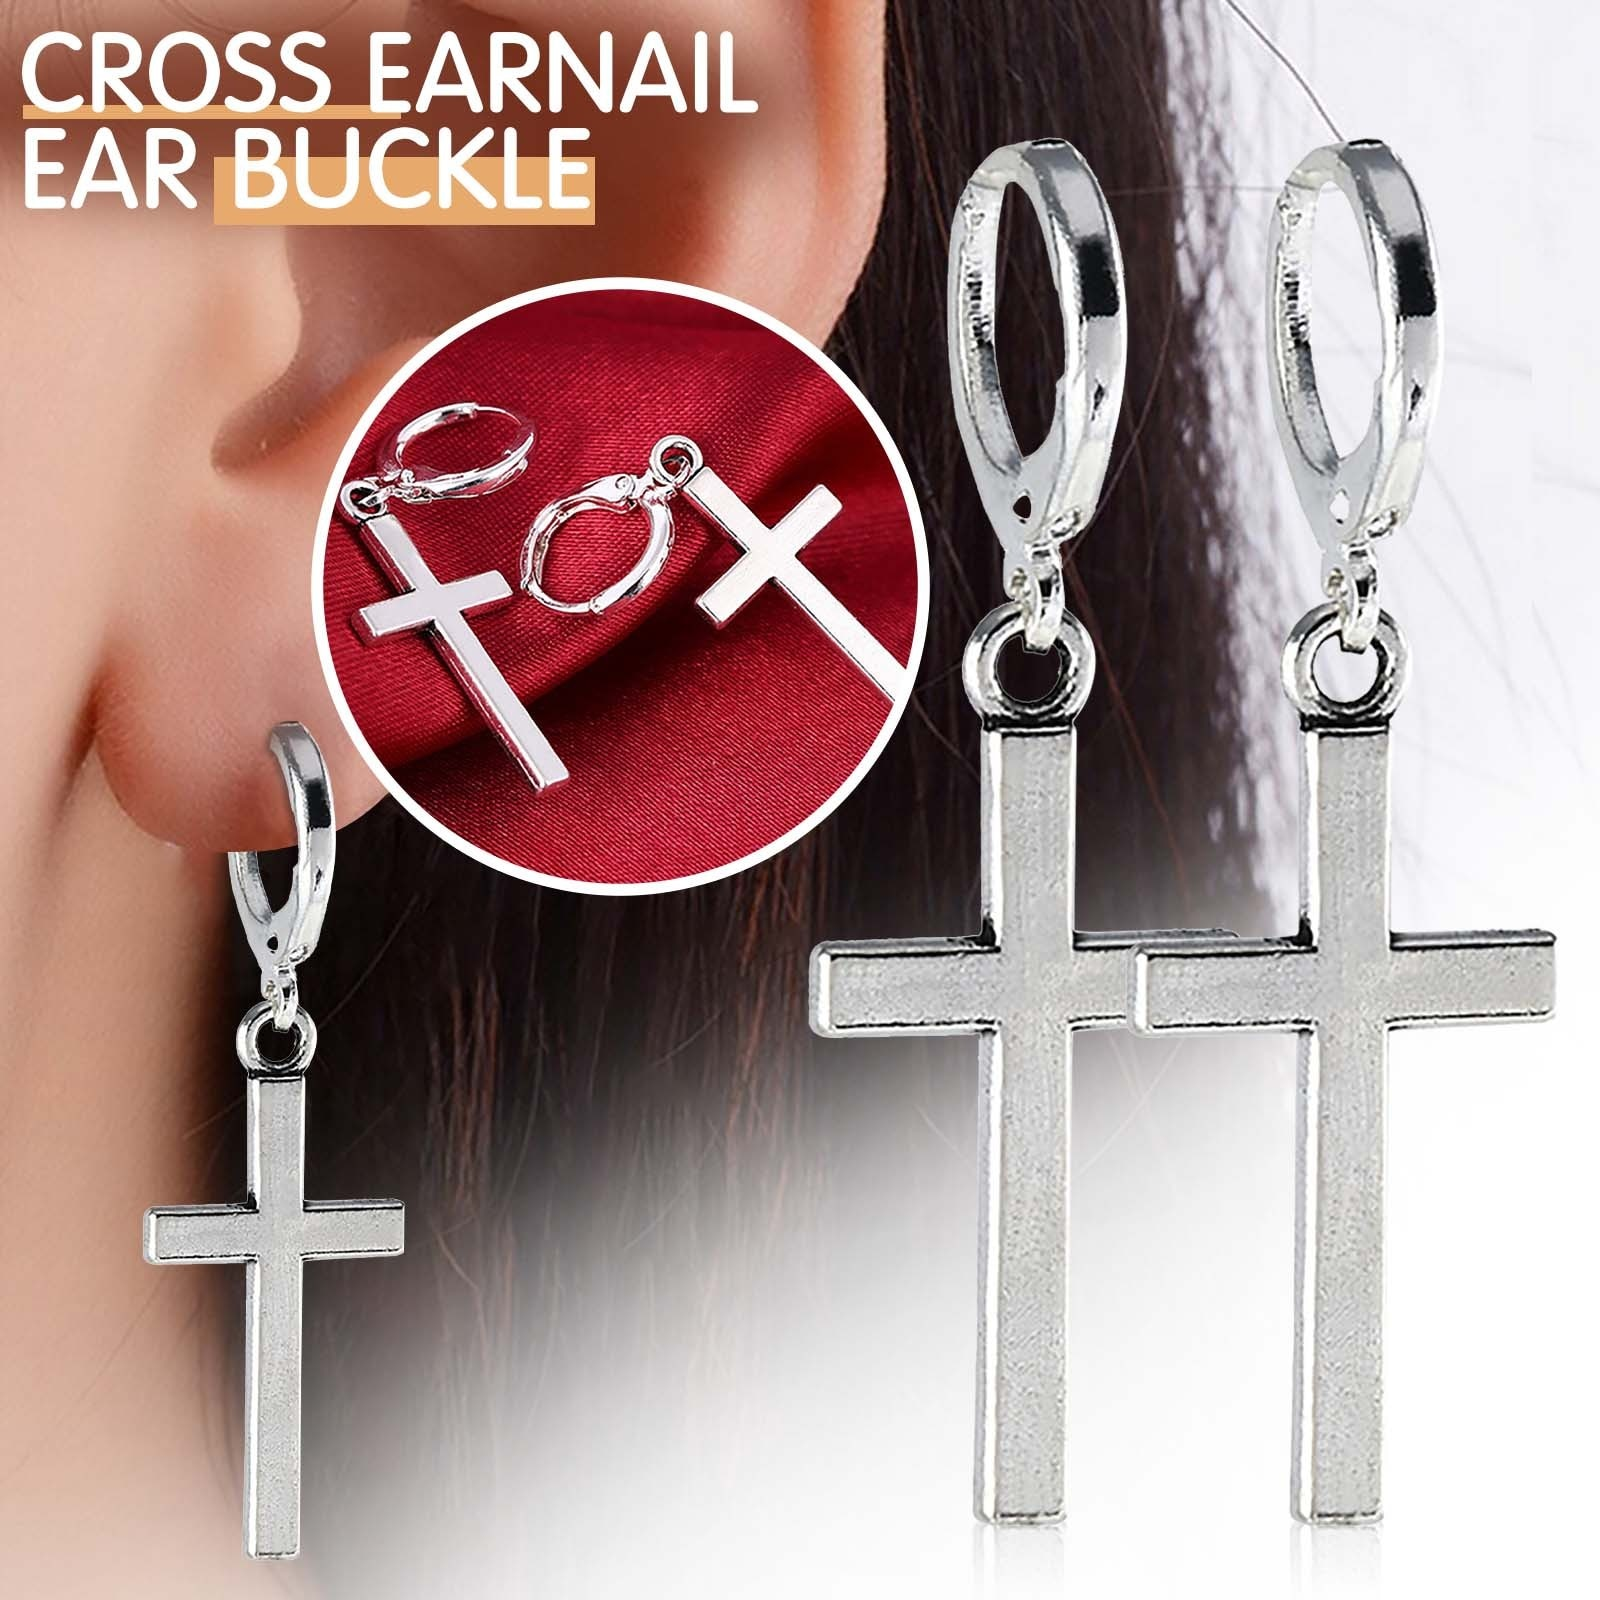 New Product Figurines & Miniatures Non-pierced Clip On Cross Dangle Hoop Earrings Set, Stainless Steel No Piercing Decorations